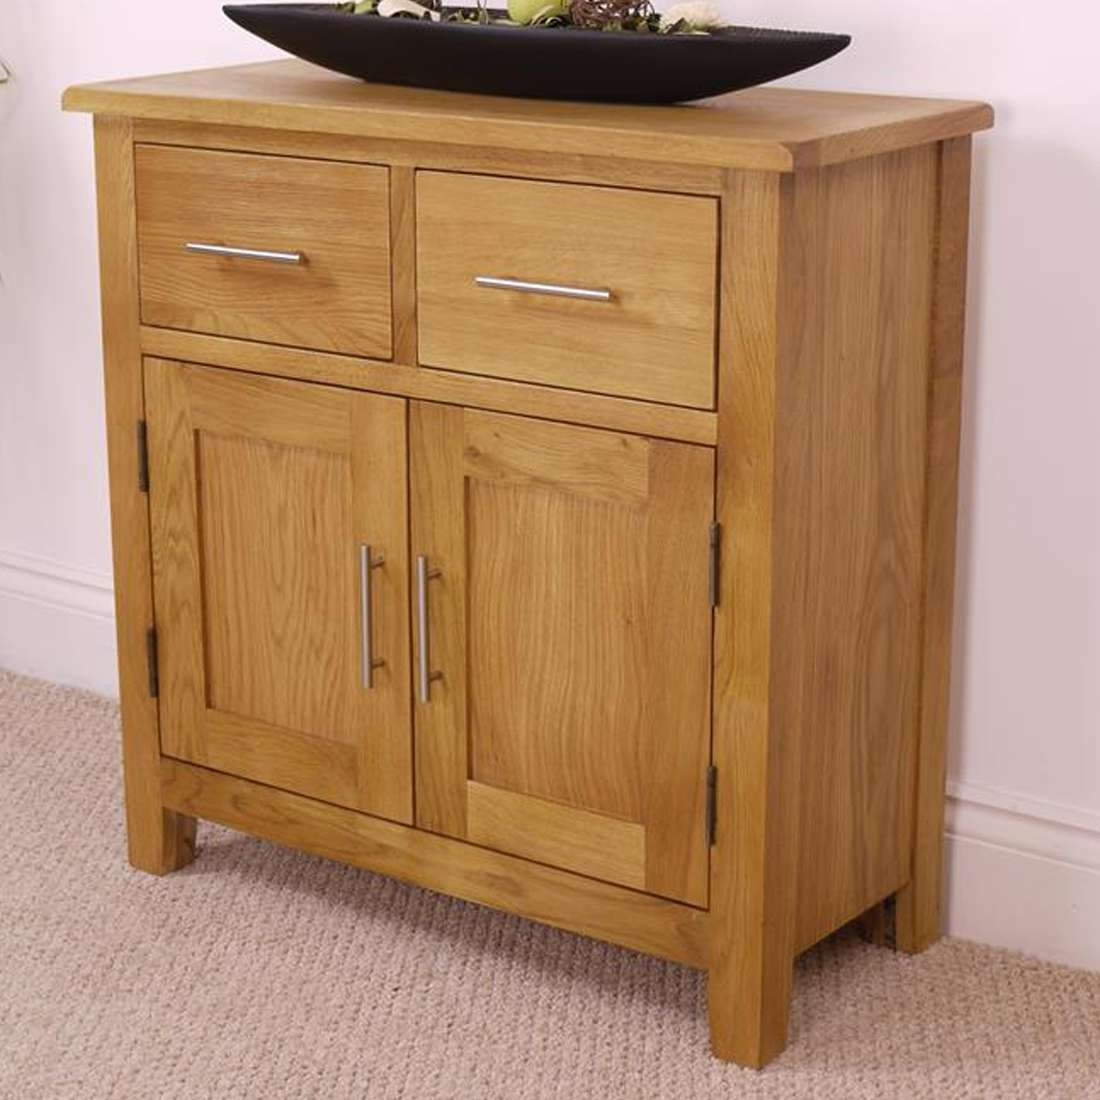 Nebraska Oak Sideboard / Solid Wood Small 2 Door 2 Drawer Storage Inside Solid Oak Sideboards (View 11 of 20)